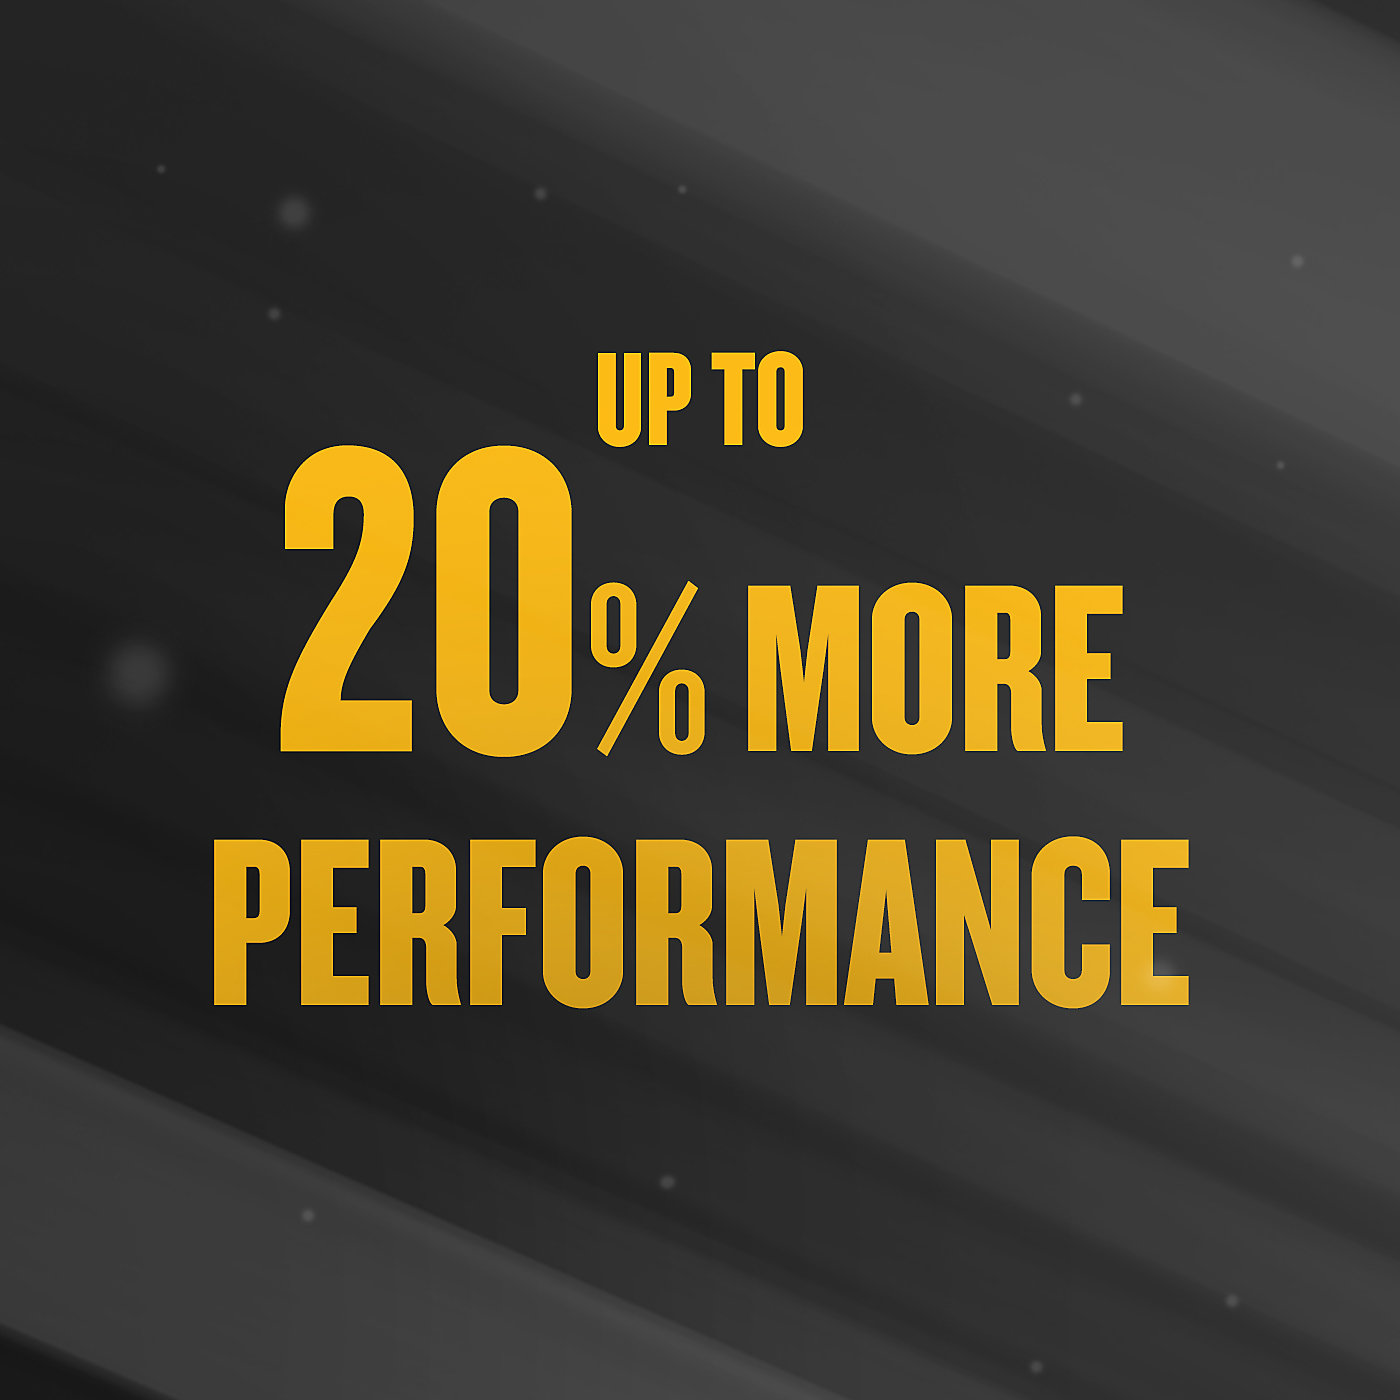 Up to 20% more performance